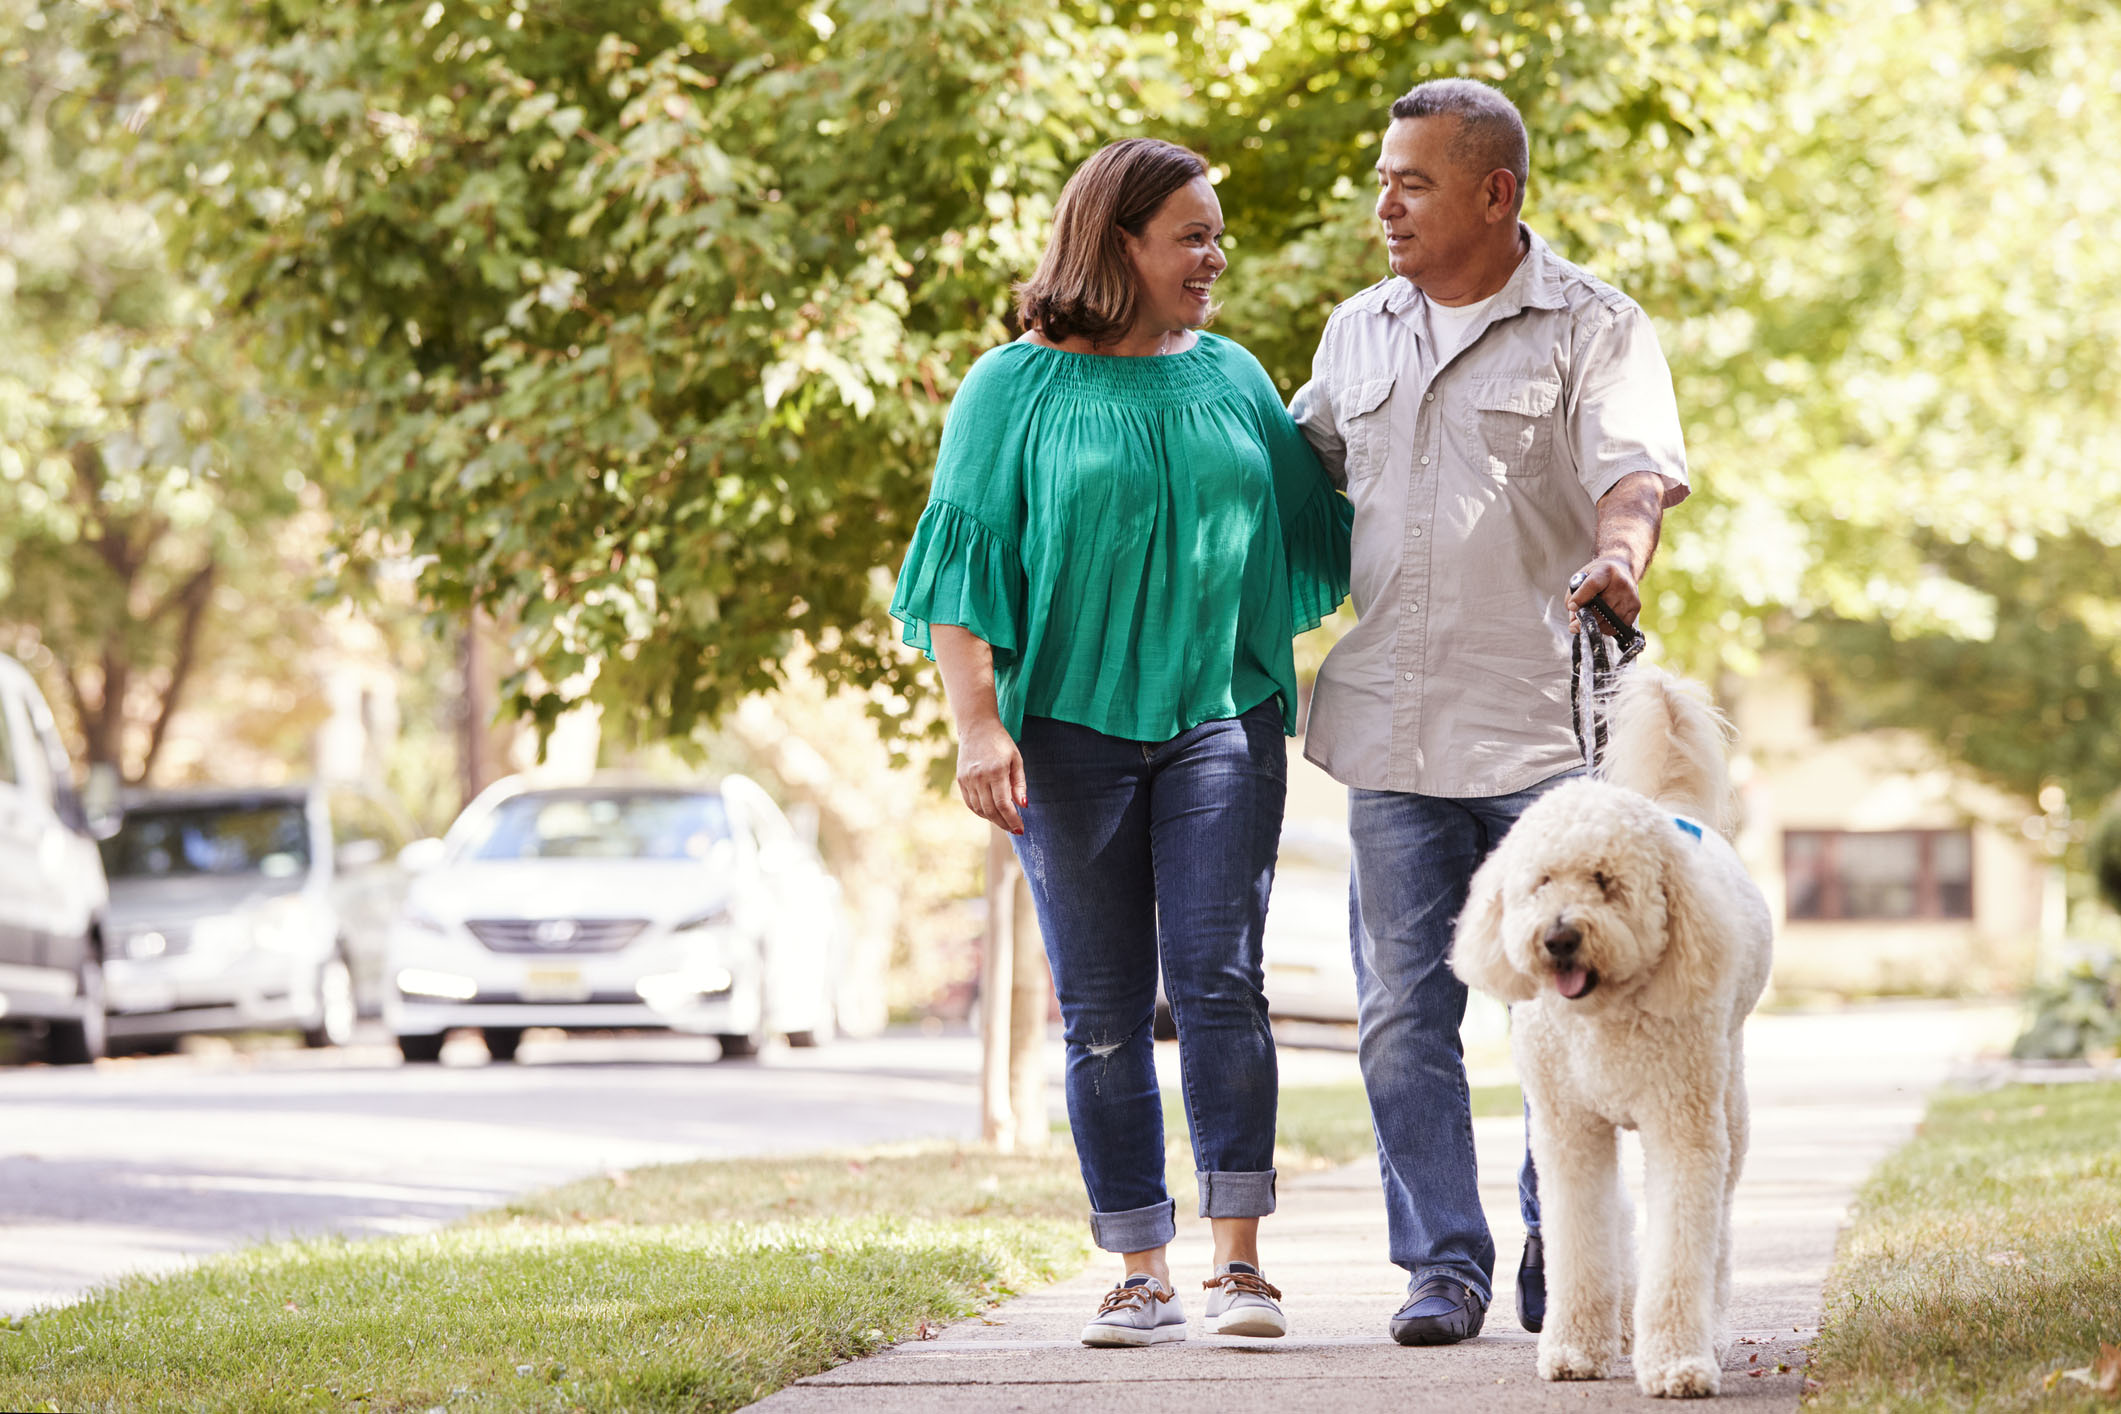 Getting active later in life brings benefits